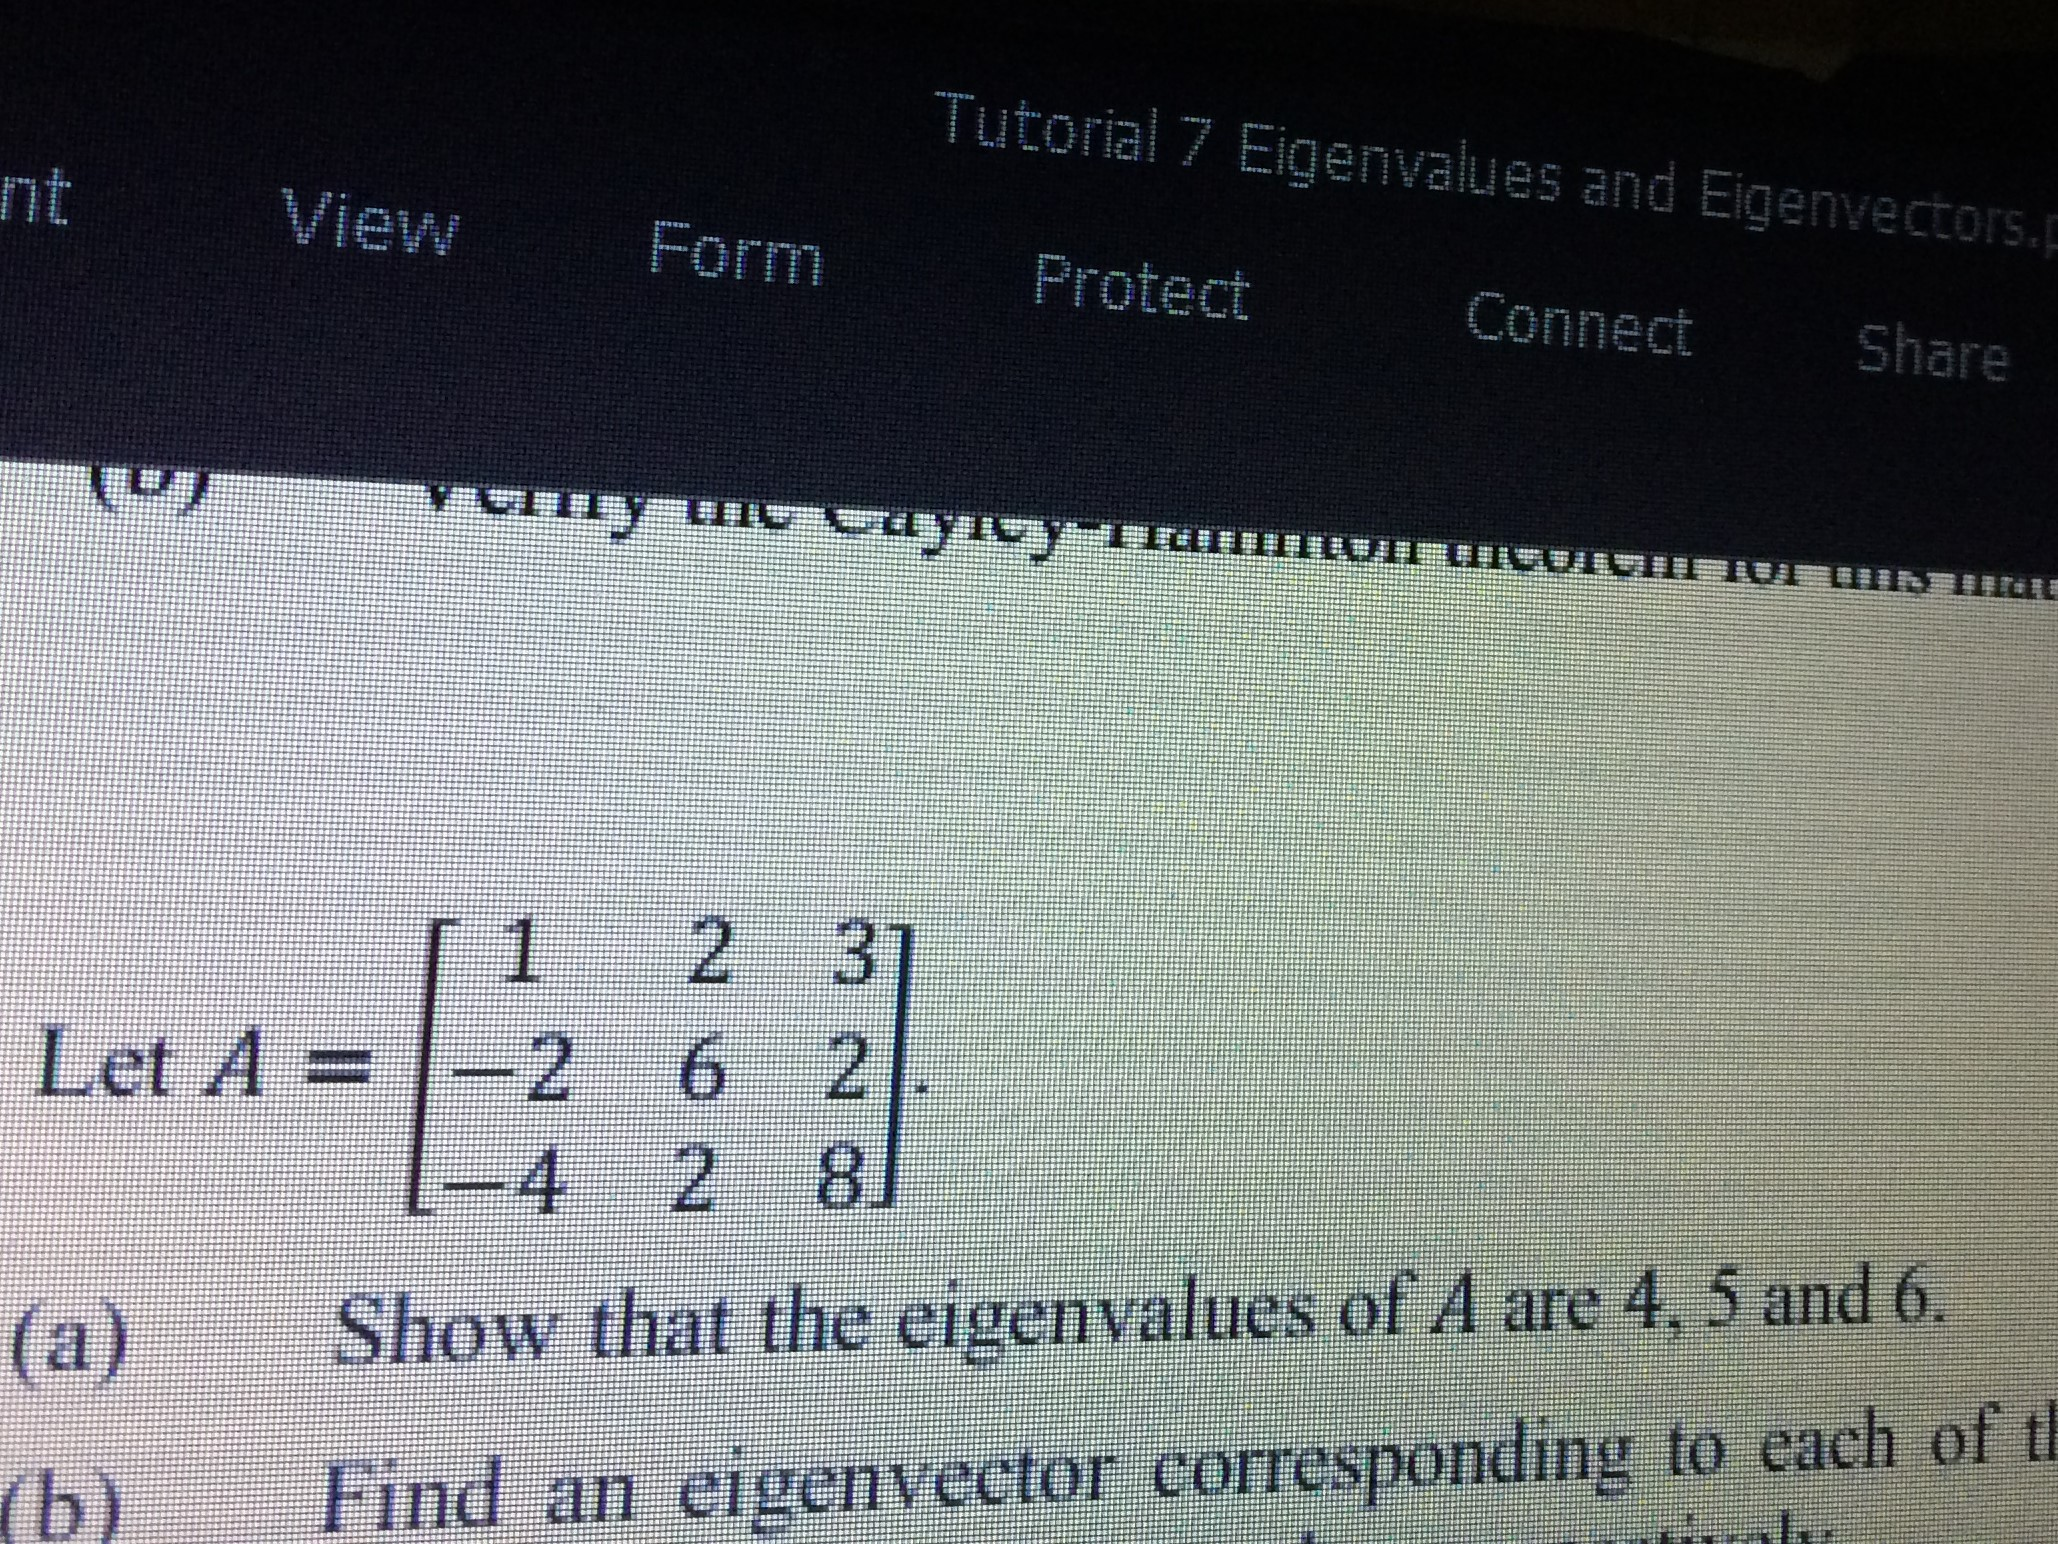 Can Anyone Please Help Me Solve This Question Part A ? I